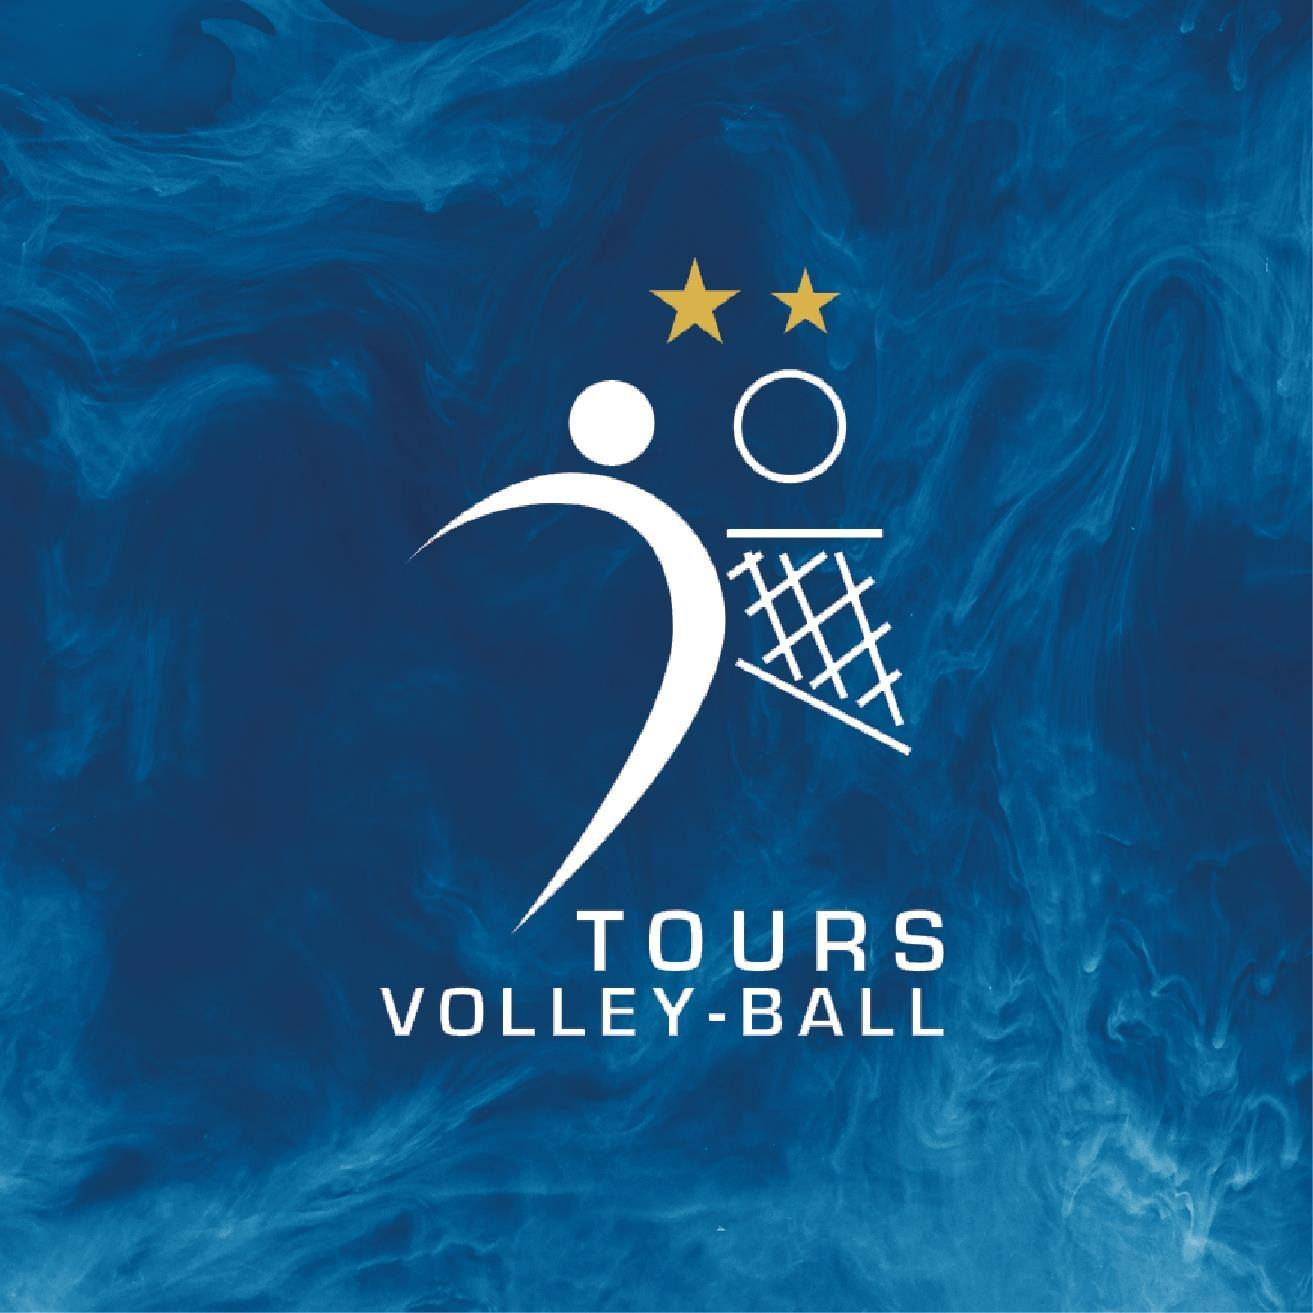 Nouveau-blason-logo-tours-volley-ball-2020-4